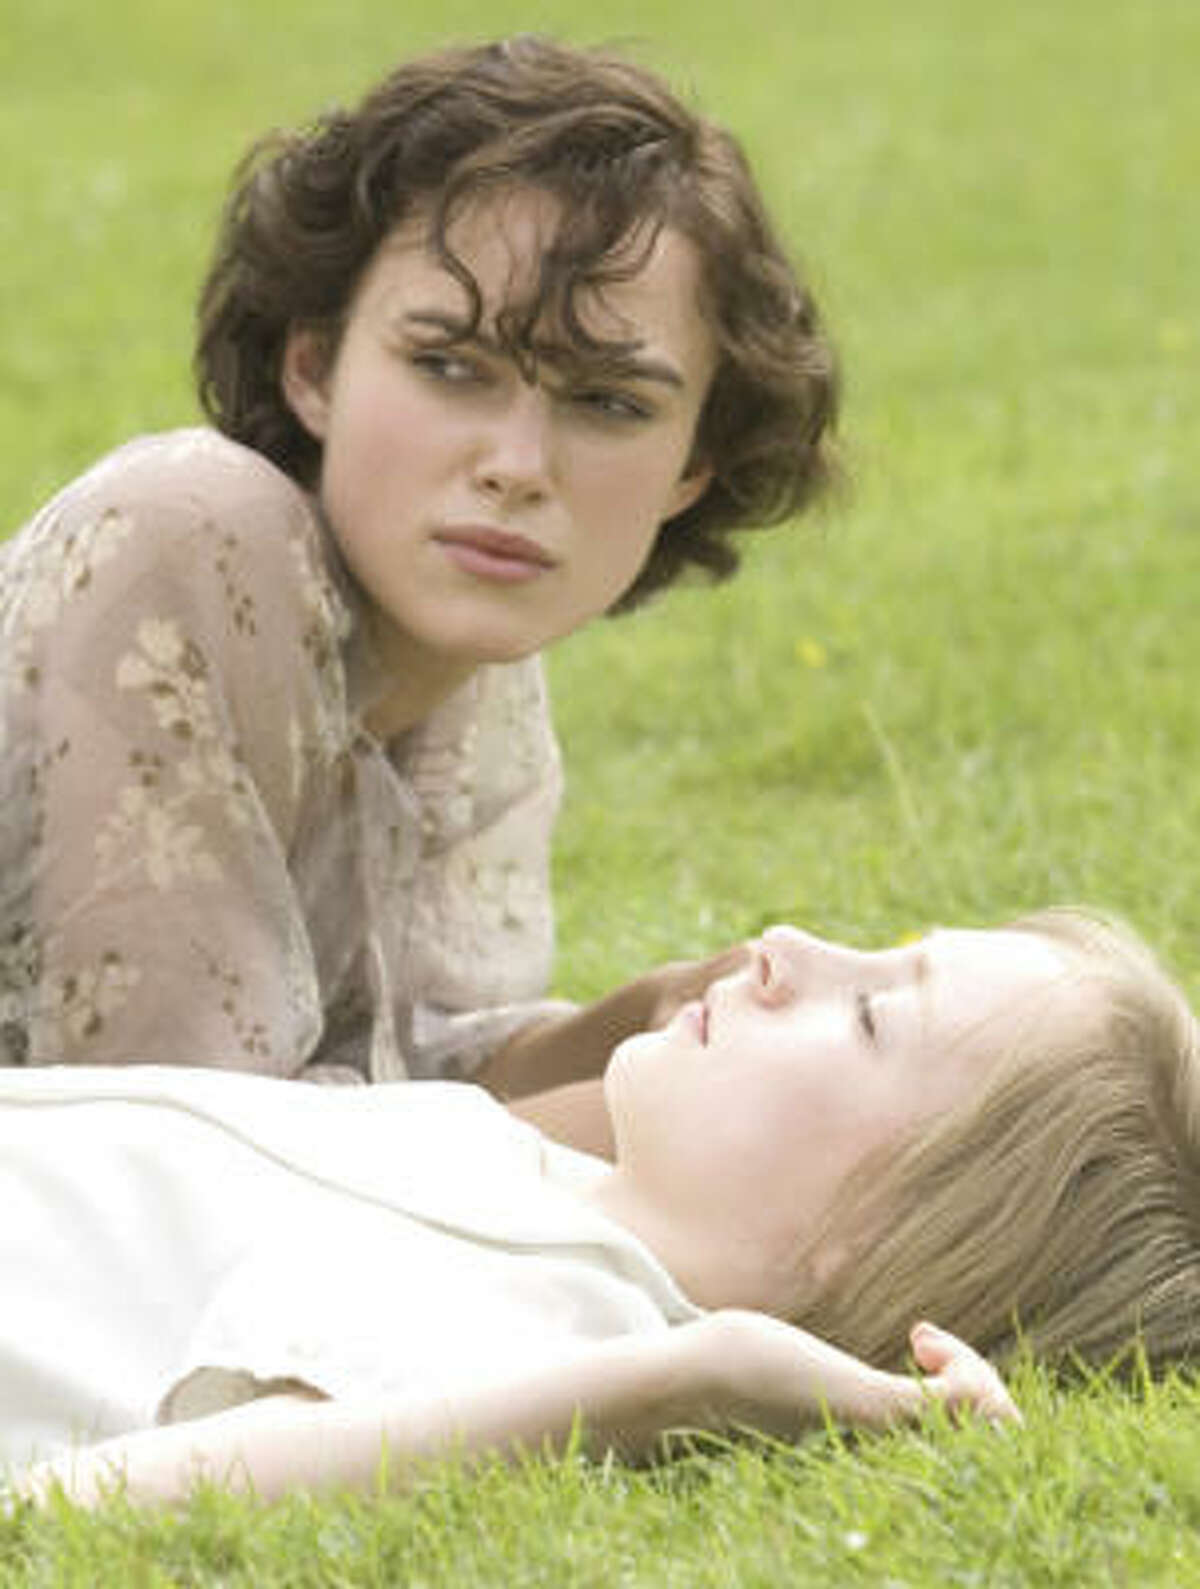 Keira Knightley stars as older sister Cecilia and Saoirse Ronan as Briony in a romance based on Ian McEwan's award-winning best-selling novel, Atonement.